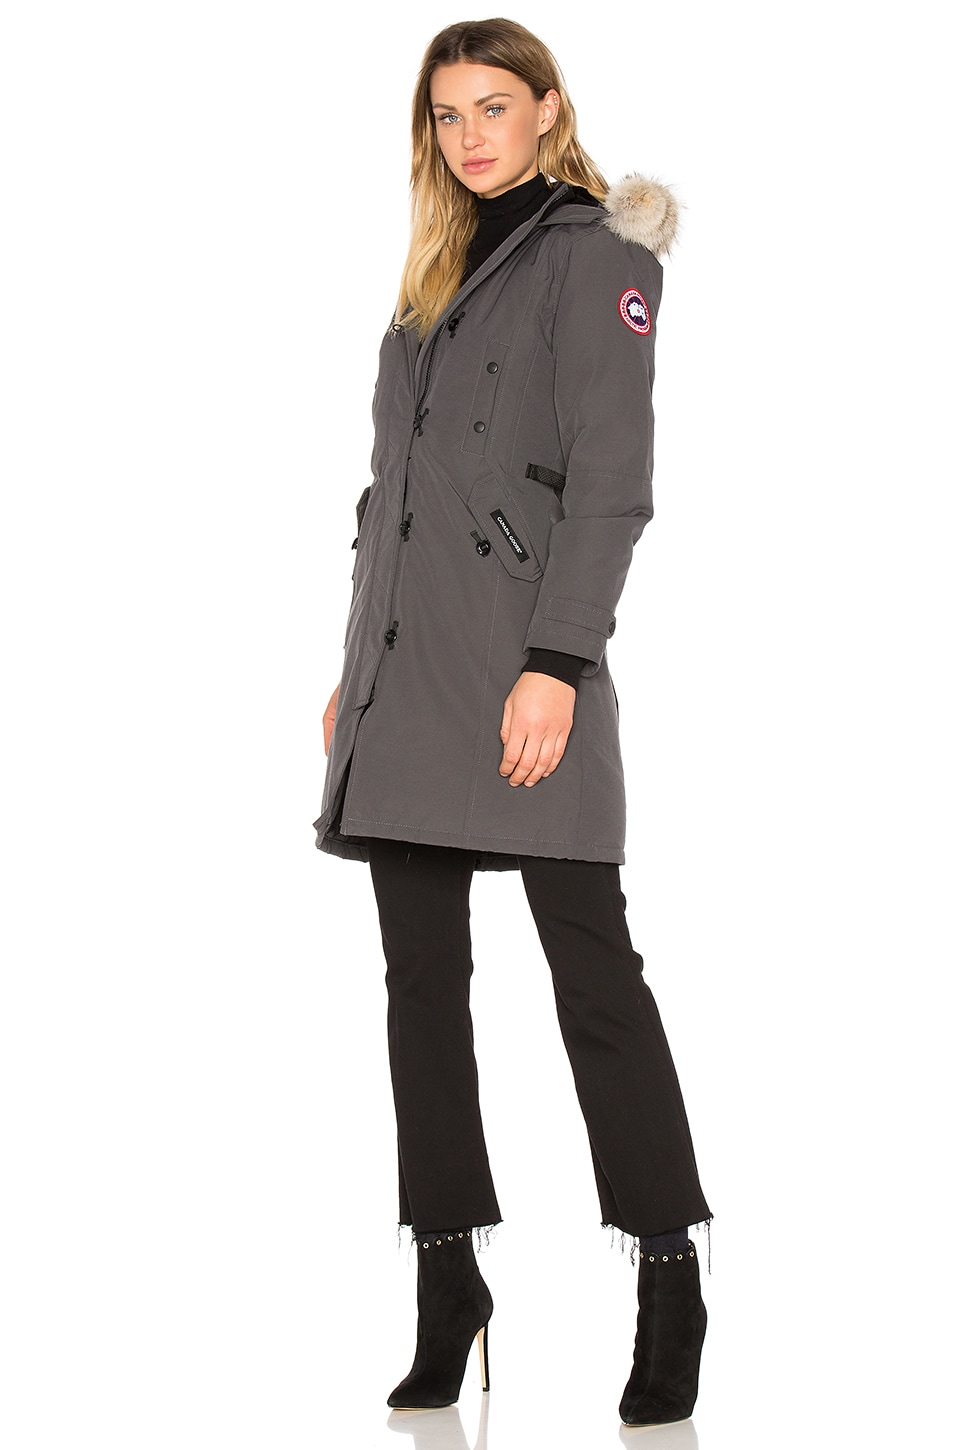 Canada Goose chilliwack parka sale store - Canada Goose Kensington Parka with Coyote Fur Trim in Graphite ...